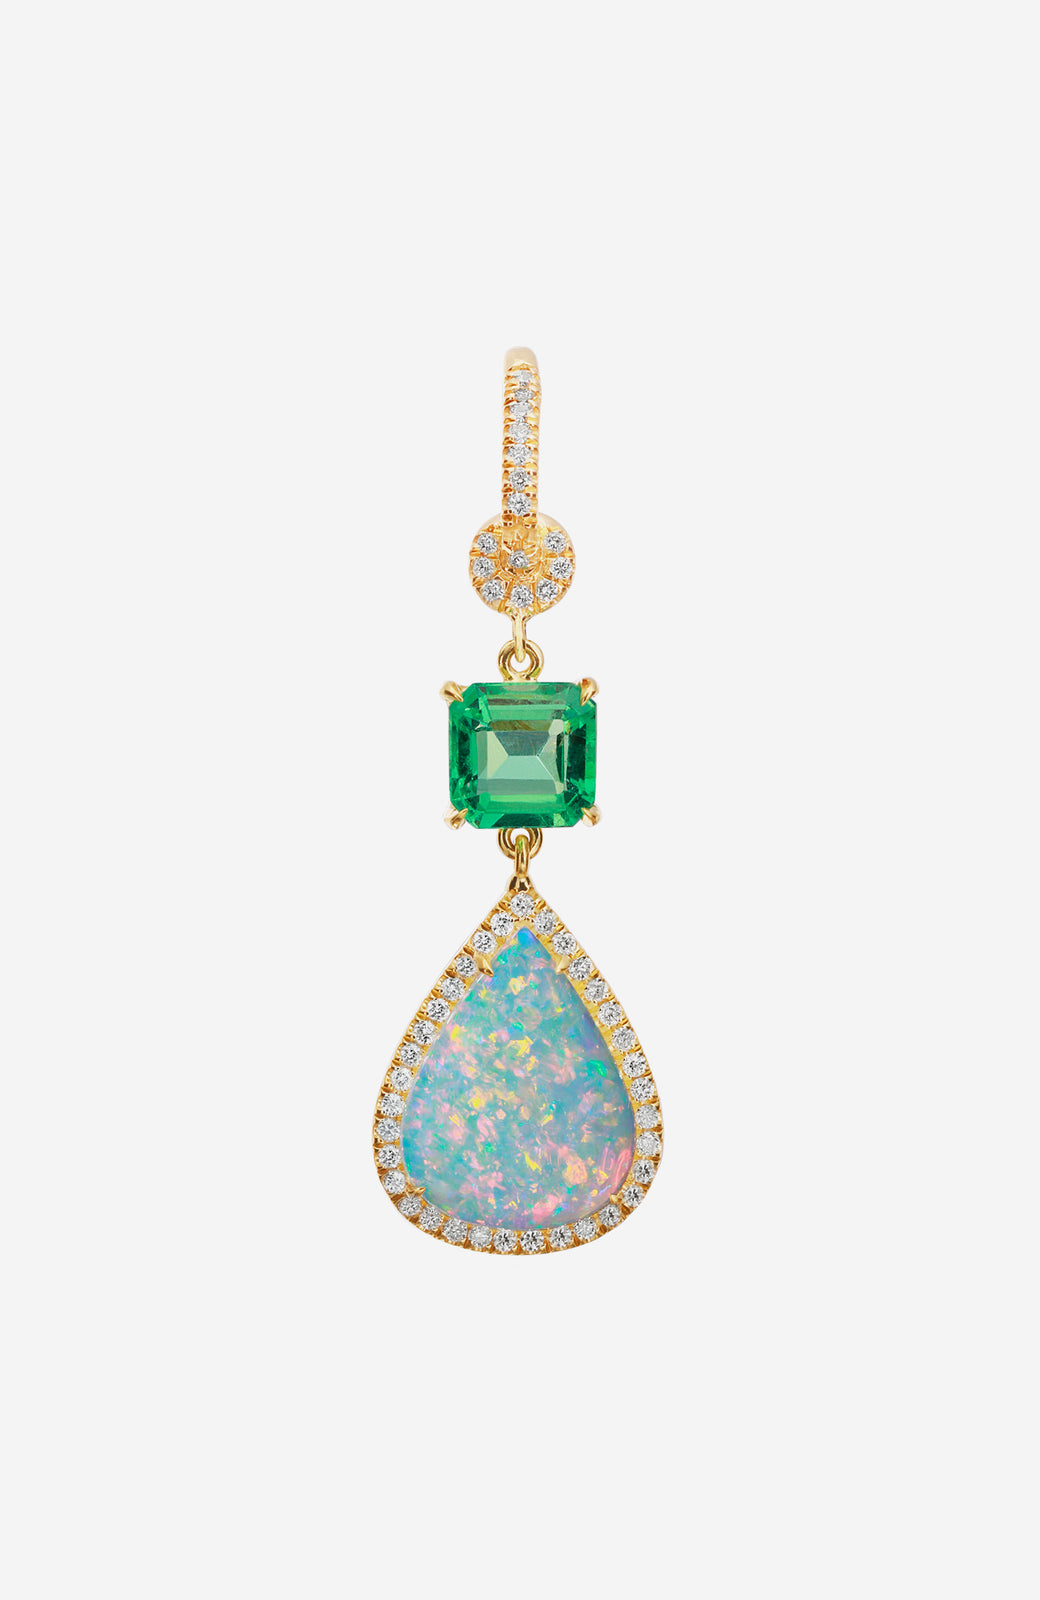 Yellow Gold Emerald and White Opal Earrings with Pave Diamonds